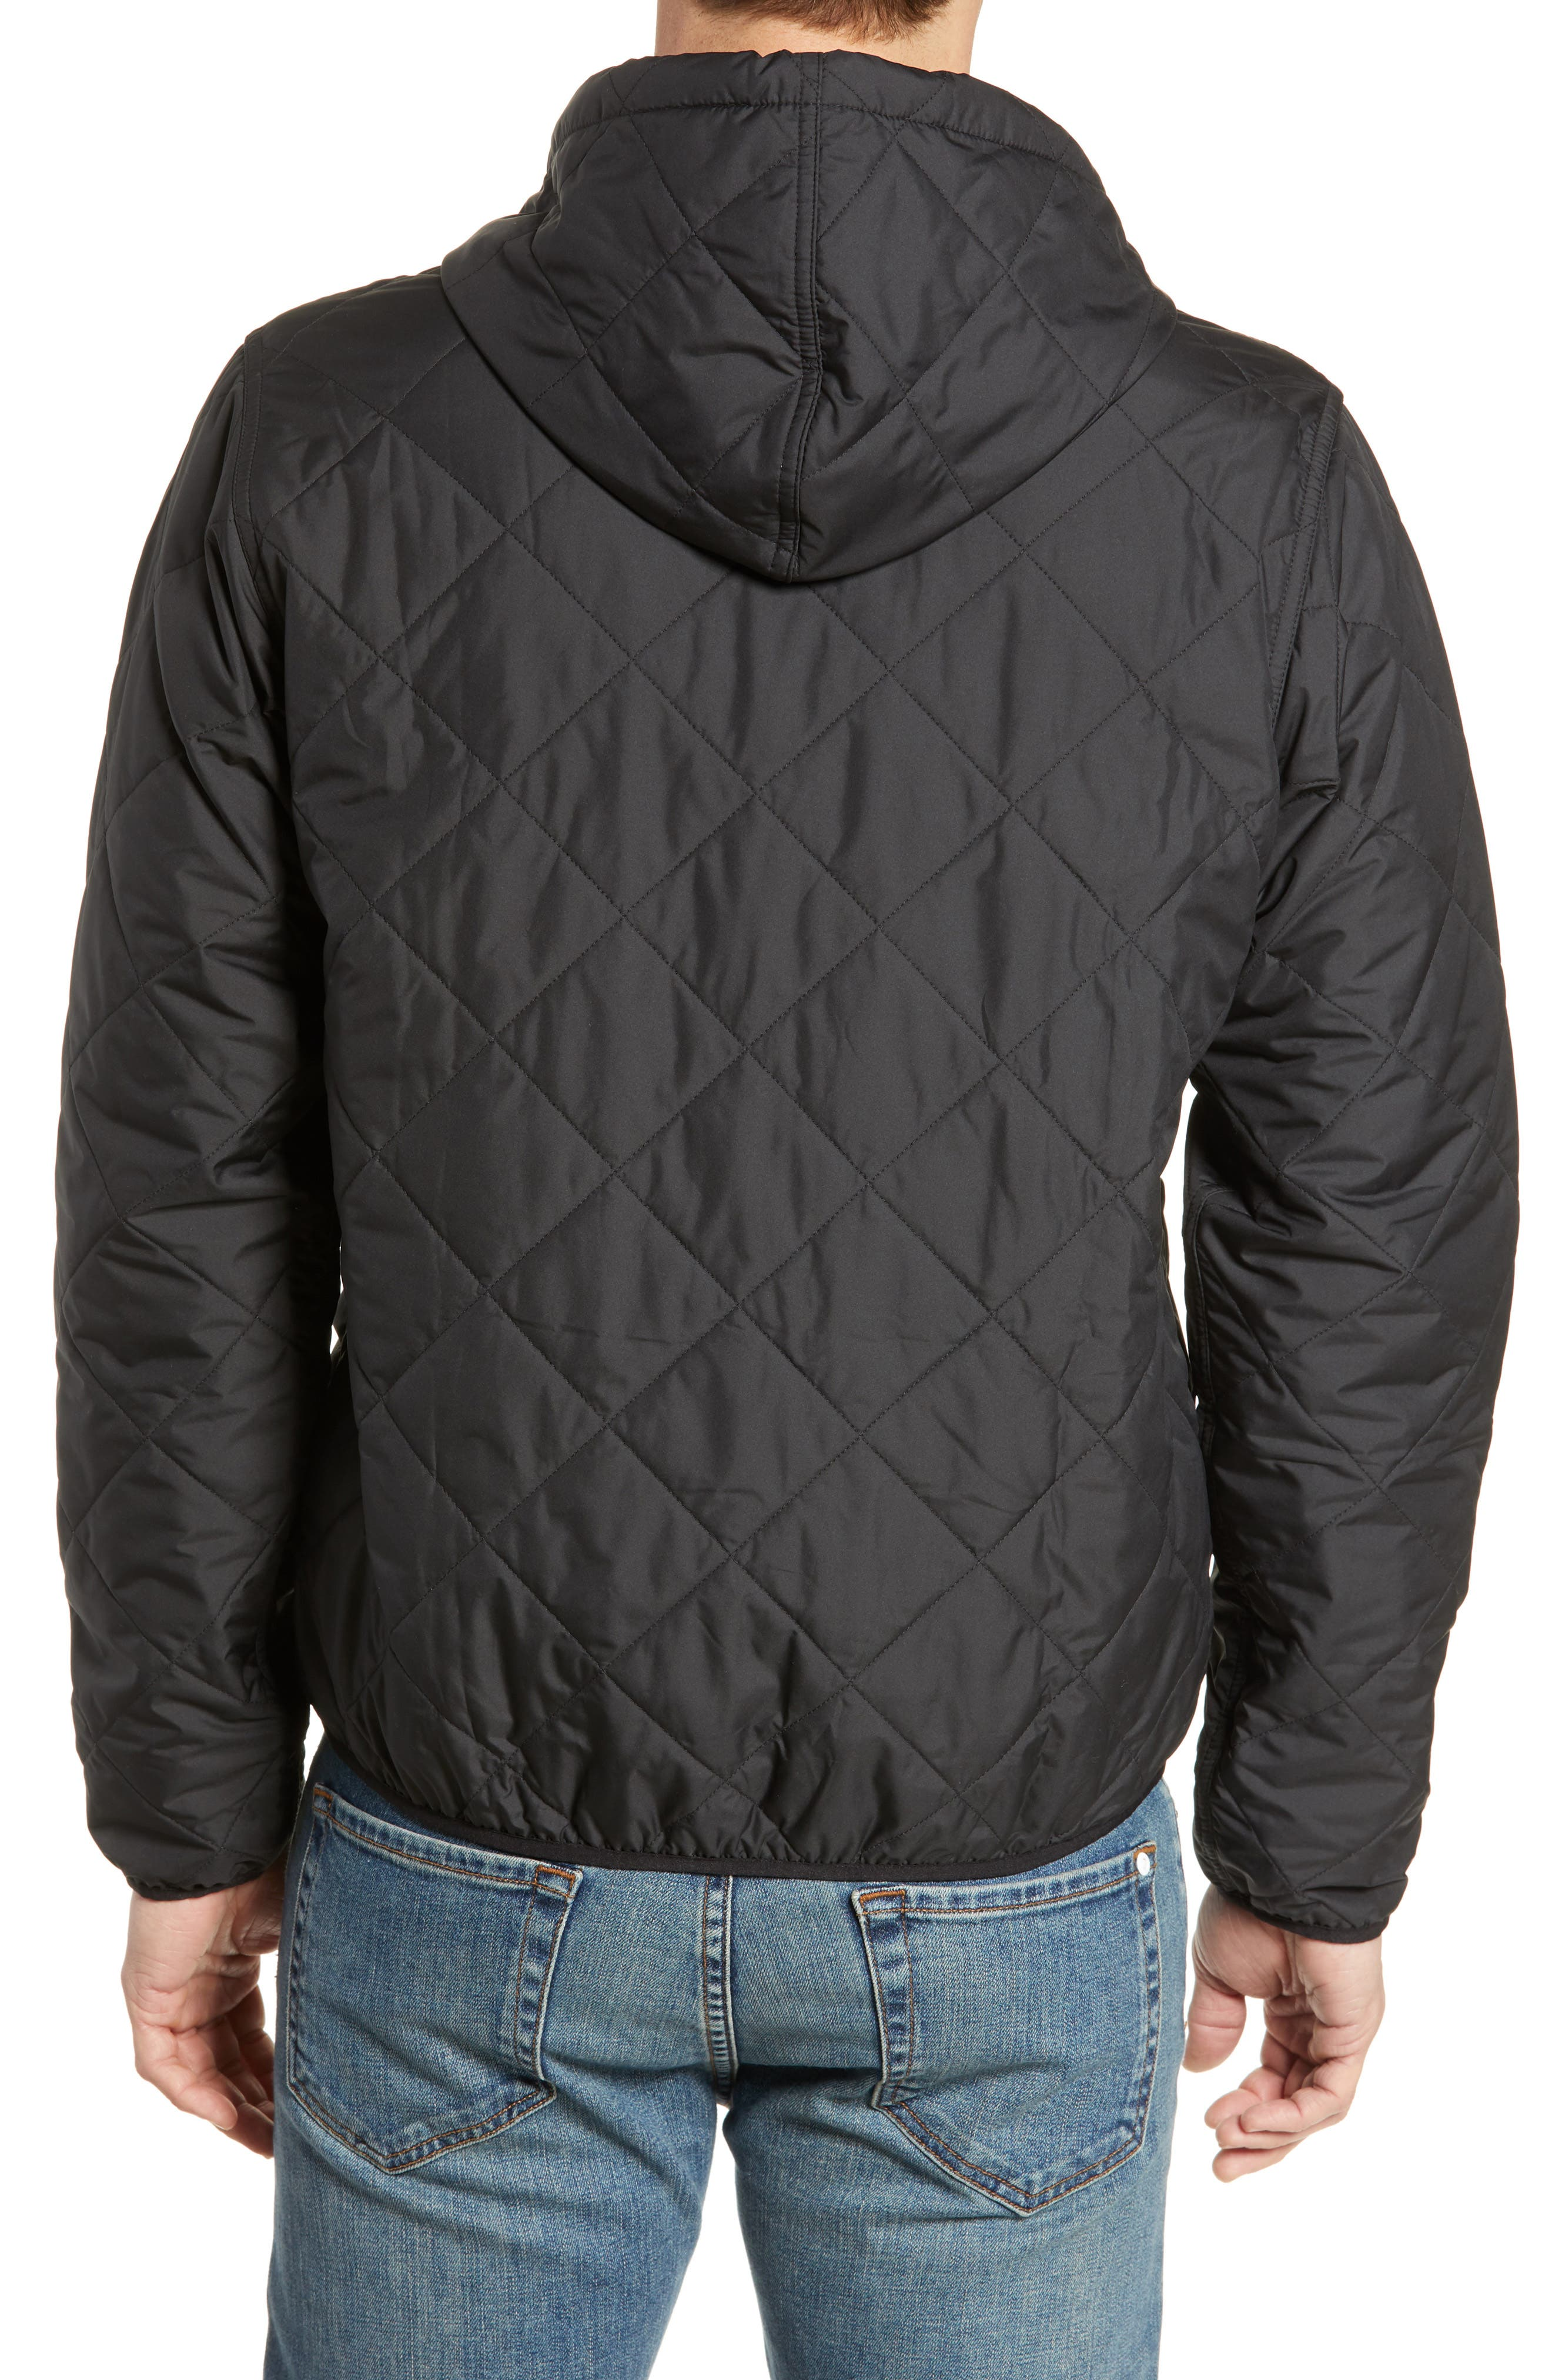 PATAGONIA, Diamond Quilt Ripstop Hooded Jacket, Alternate thumbnail 2, color, 001